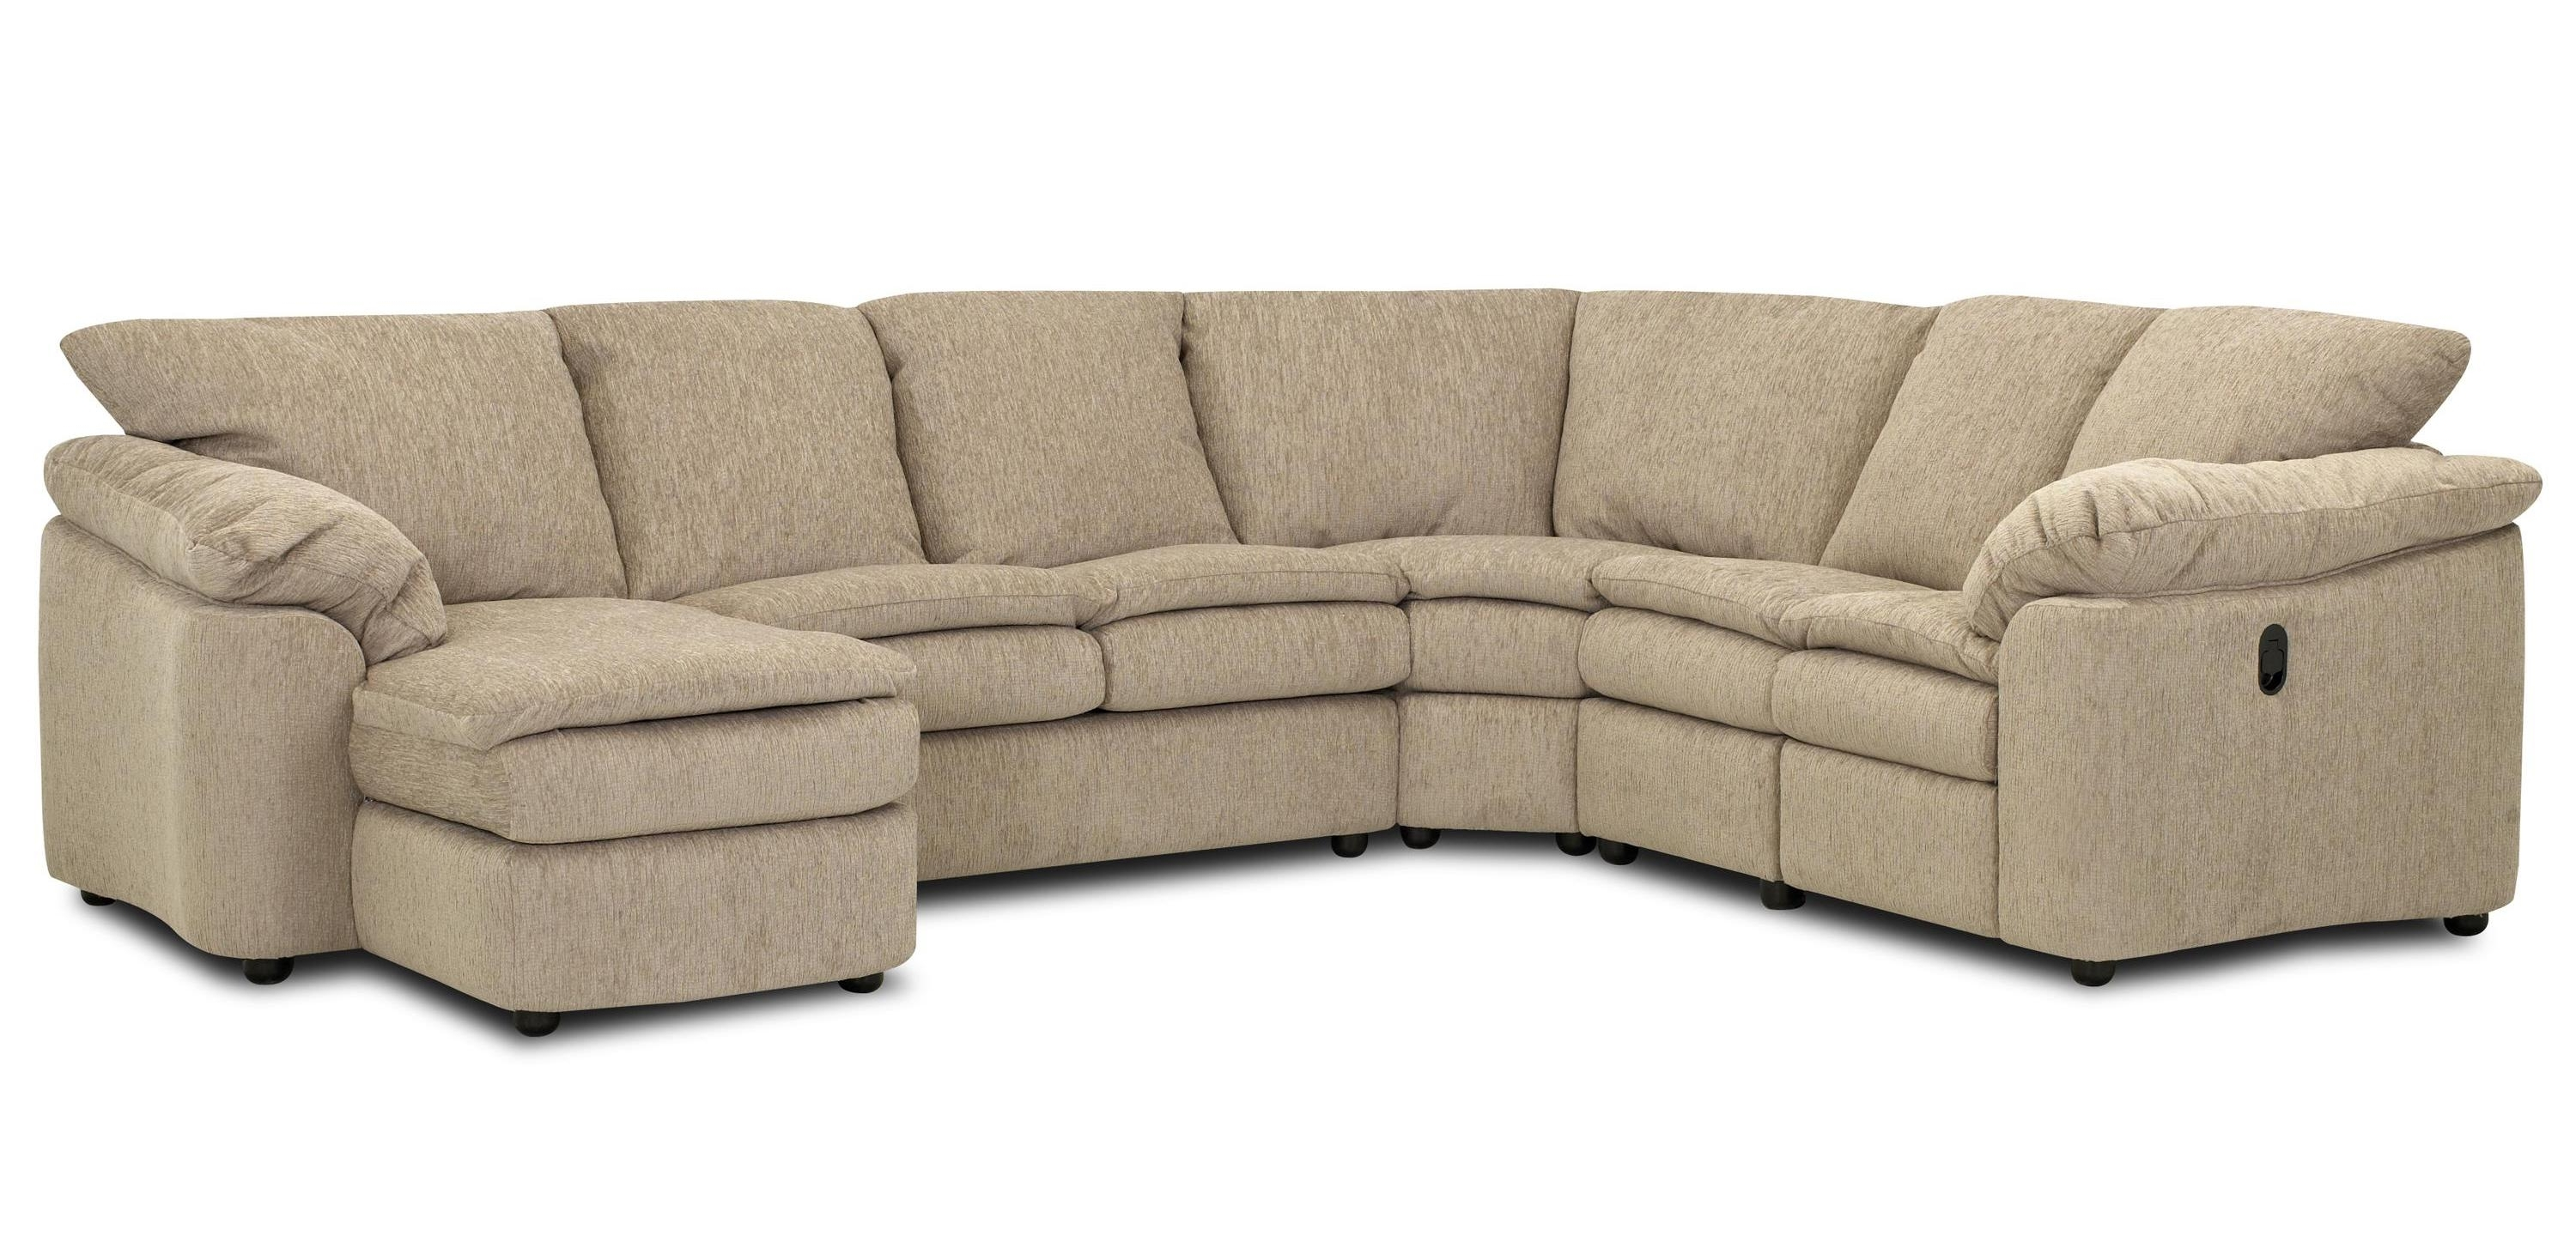 Well Liked Klaussner Legacy Dual Reclining Left Arm Loveseat, Sleeper And For Dual Chaise Sectionals (View 14 of 15)